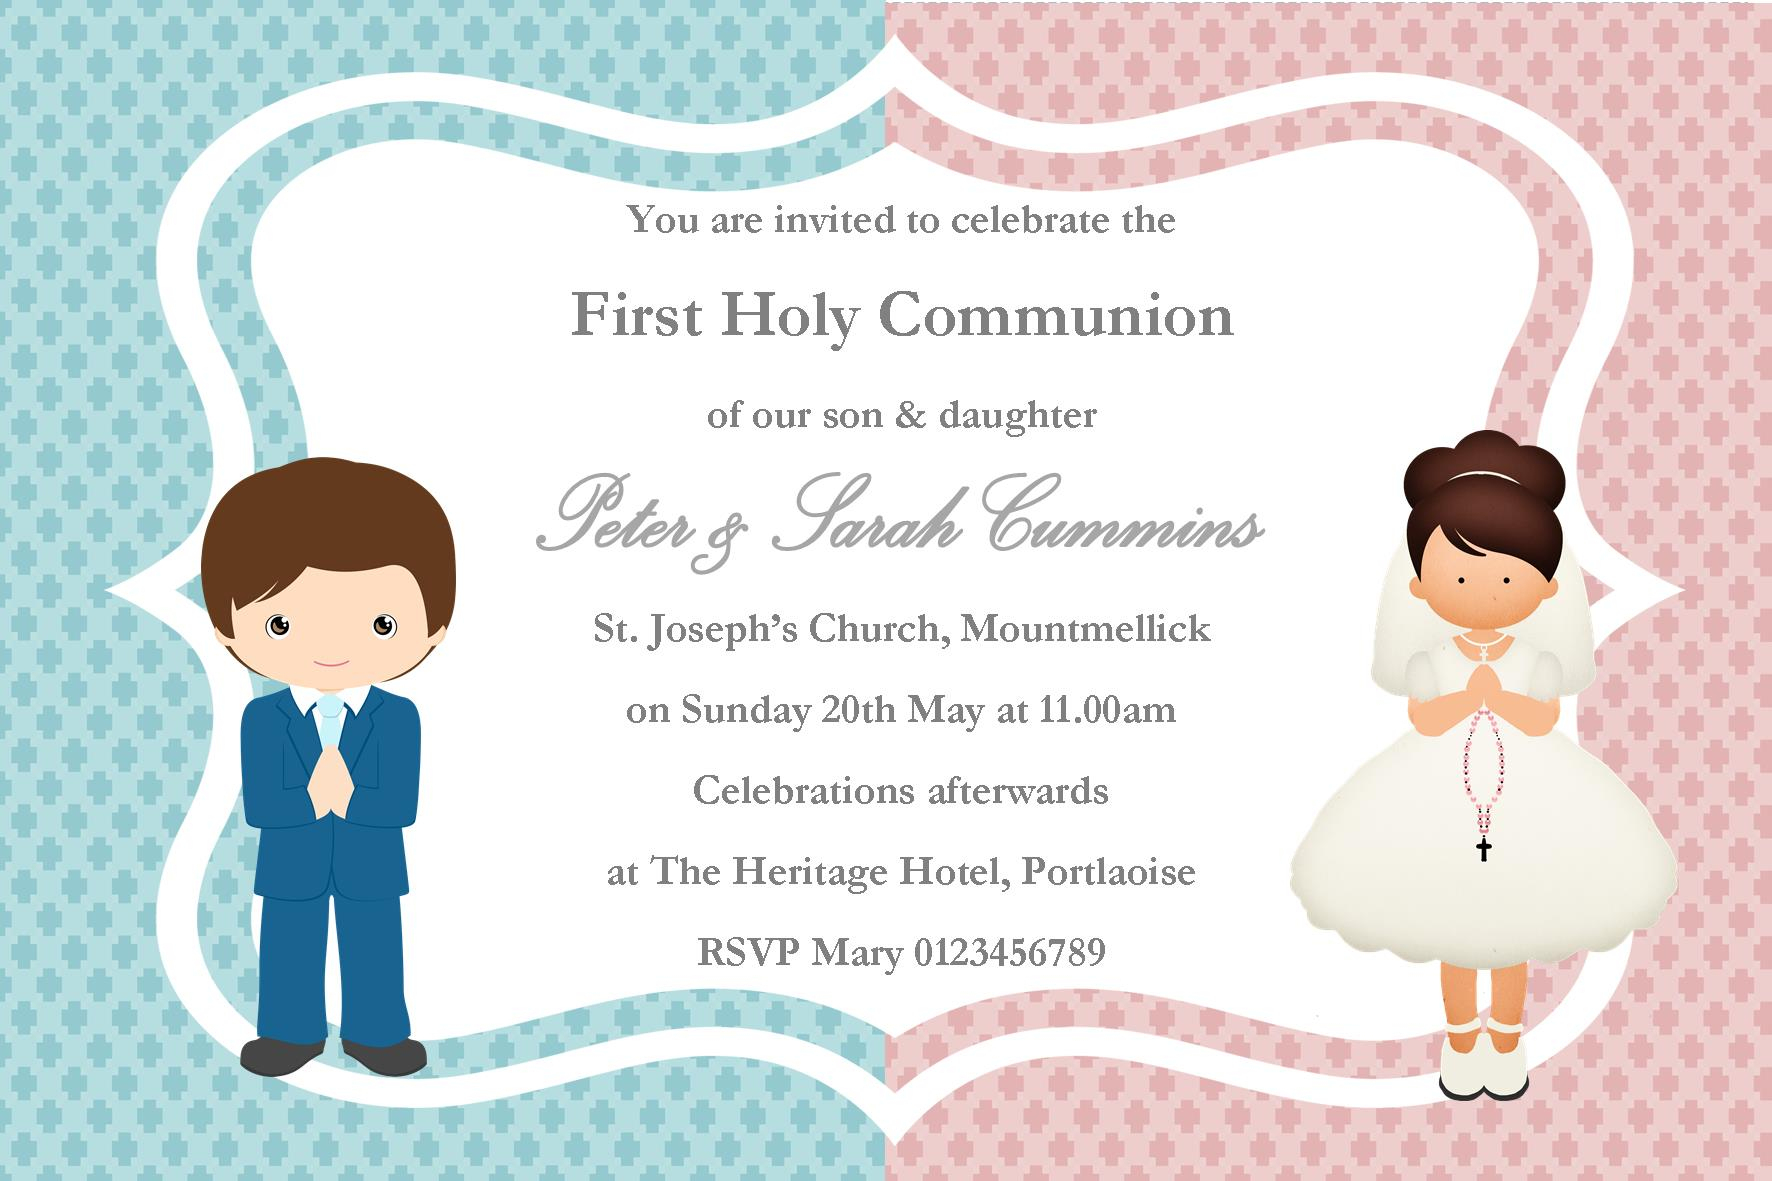 First Communion Party Invitations First Communion Party Invitations - Free Printable First Communion Invitation Templates